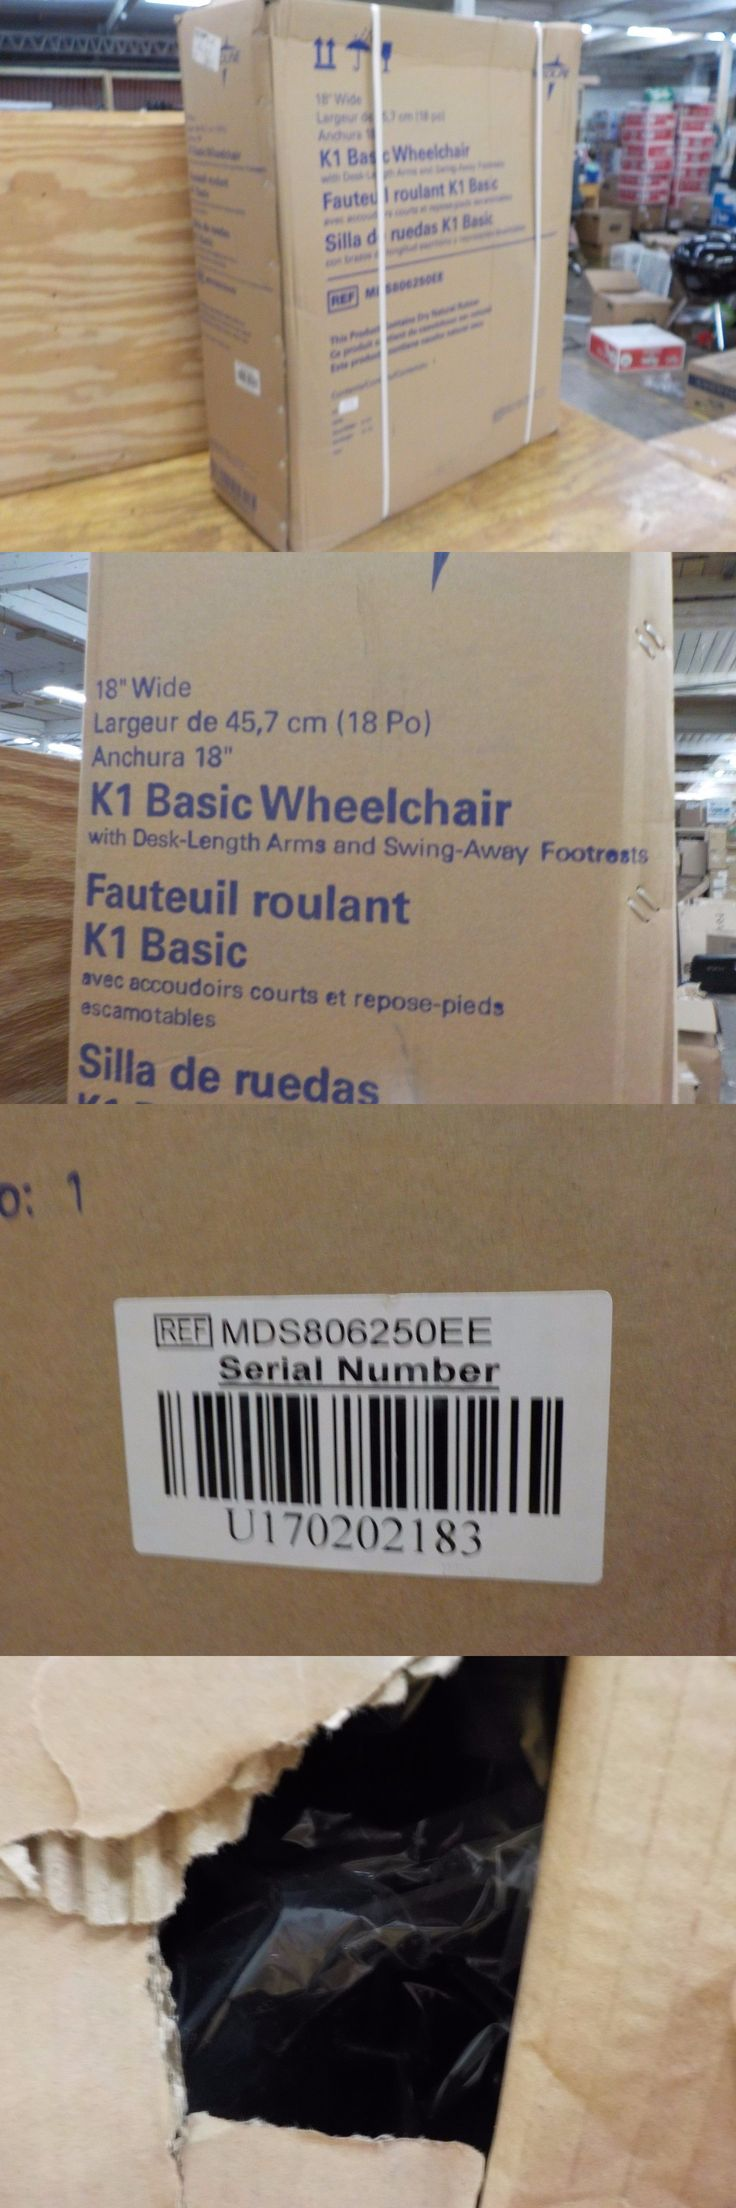 Wheelchairs: Medline K1 Basic 18 Width Wheelchair - Mds806250ee -> BUY IT NOW ONLY: $145 on eBay!